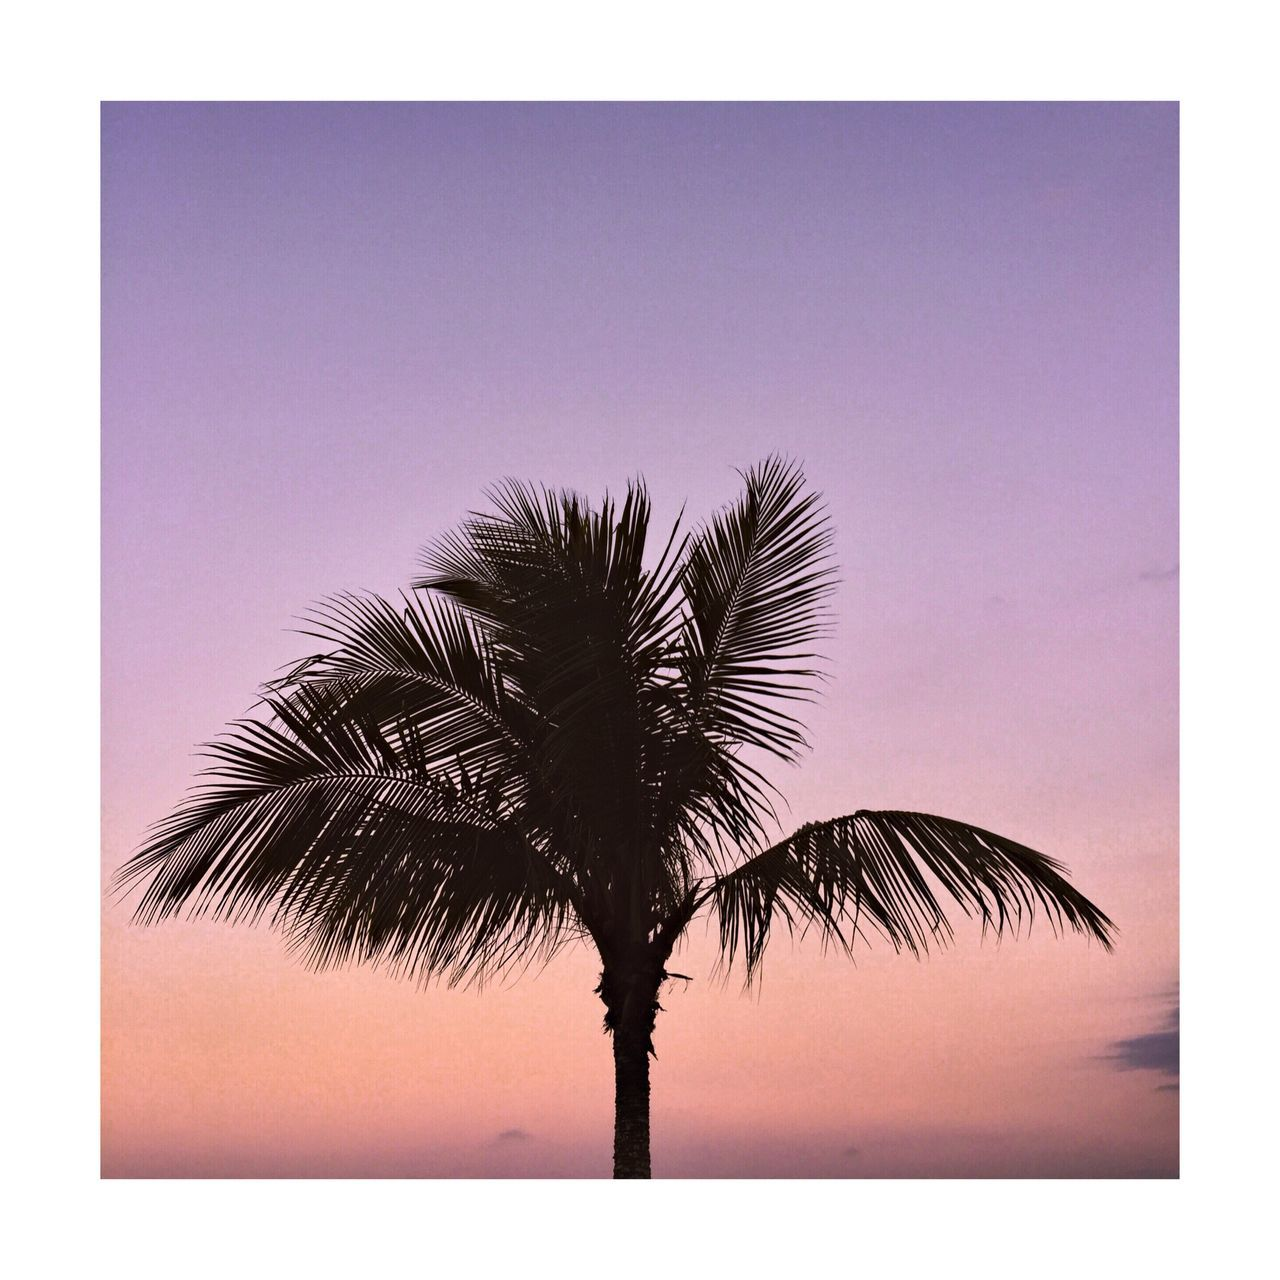 Palm Tree Tree Palm Frond Tree Trunk Low Angle View Growth Sky Scenics Beauty In Nature Silhouette Tranquil Scene Nature Outdoors Tall No People Clear Sky Day